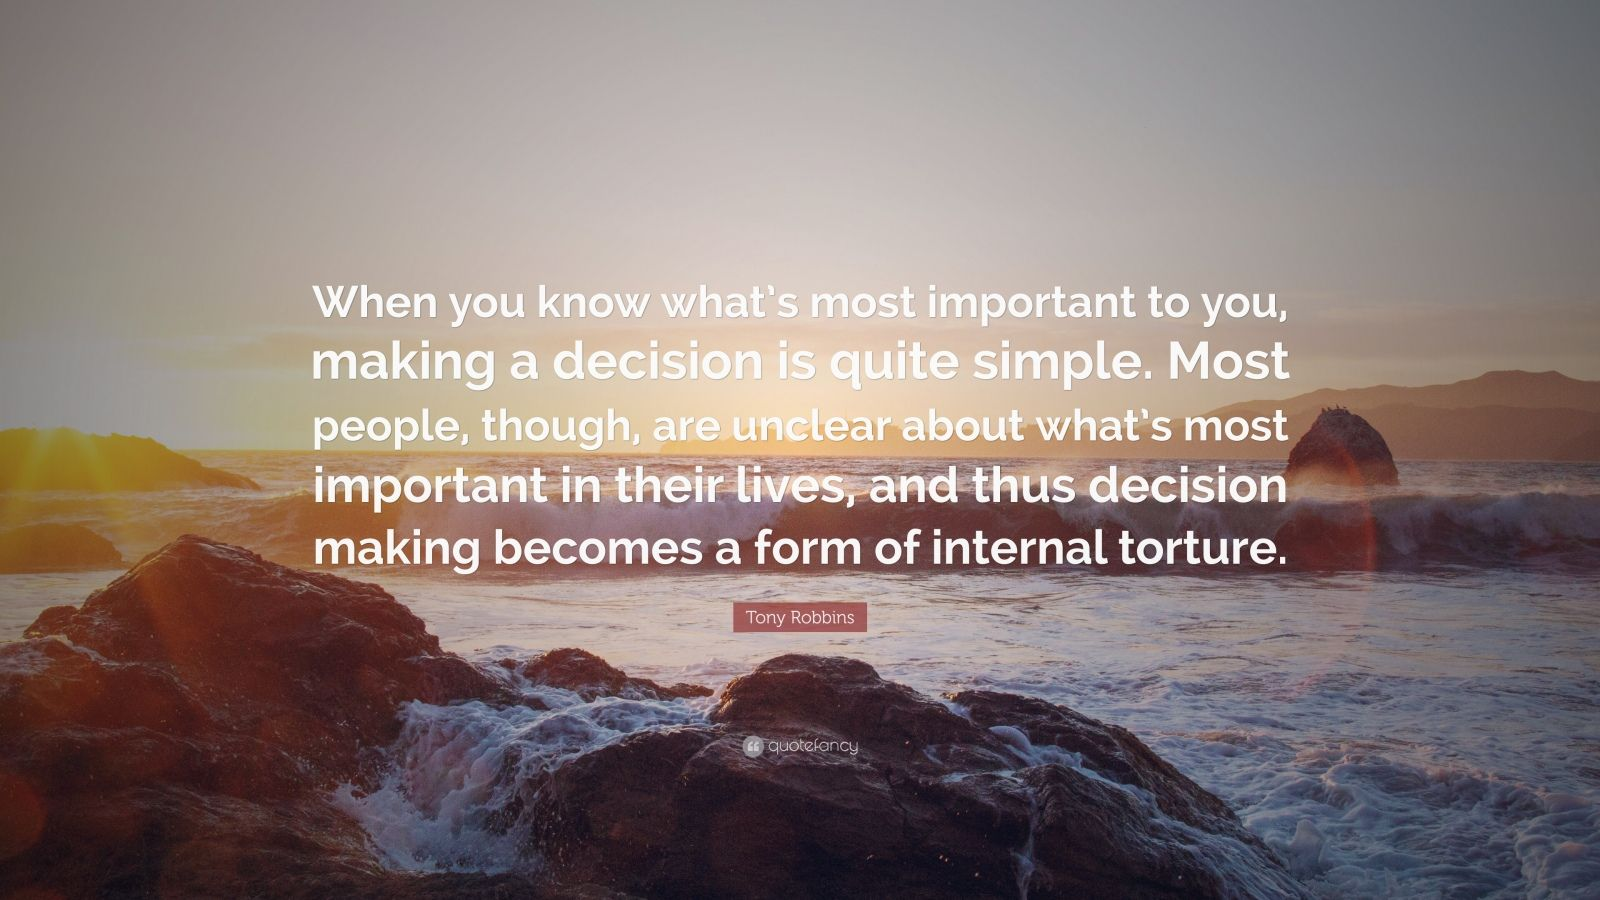 """Tony Robbins Quote: """"When you know what's most important to you, making a decision is quite simple. Most people, though, are unclear about what's most important in their lives, and thus decision making becomes a form of internal torture."""""""